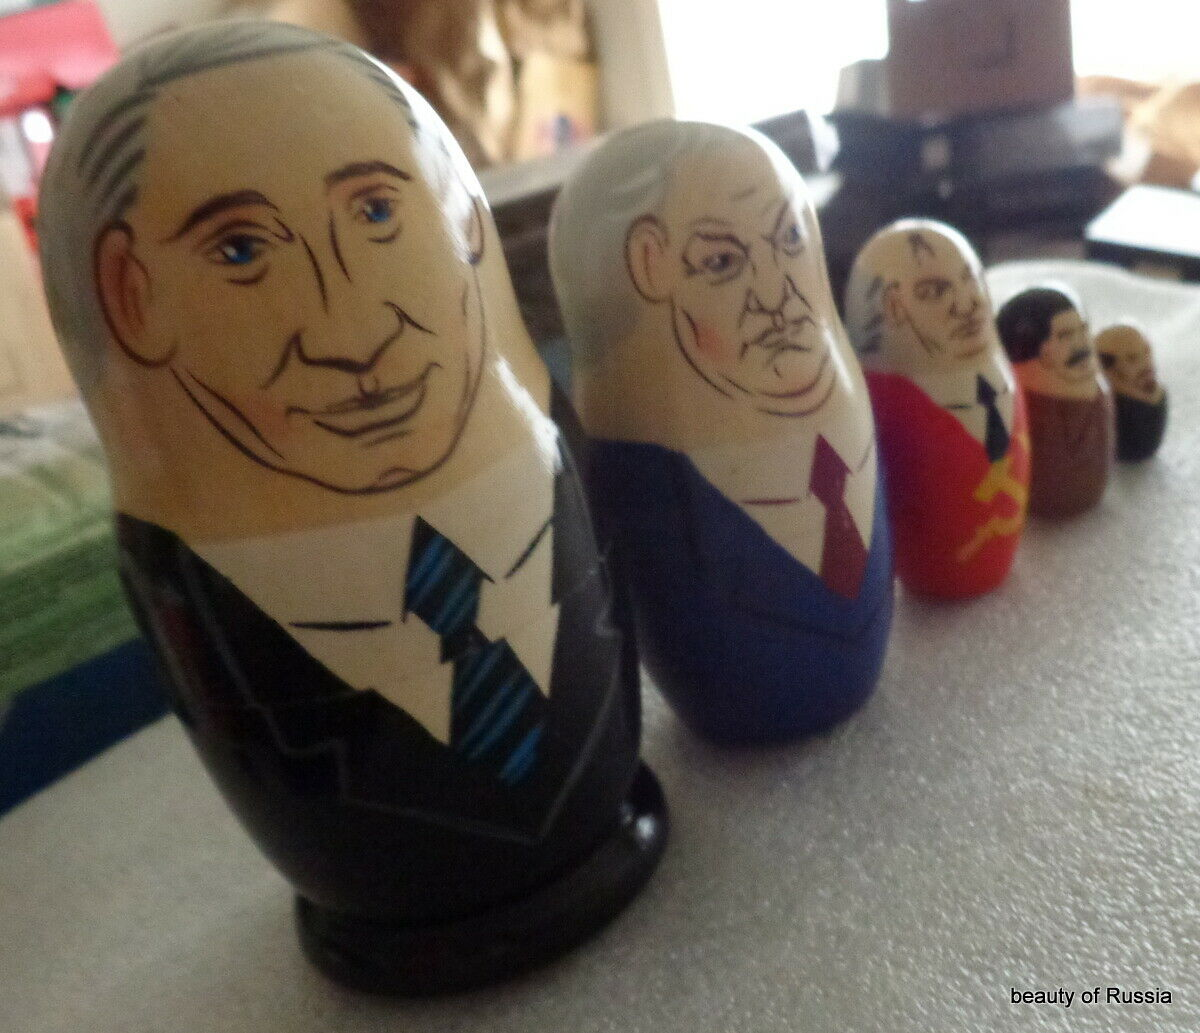 WOOD Hand Painted RUSSIAN SOVIET LEADERS NESTING DOLL 5 PCS  - $14.99